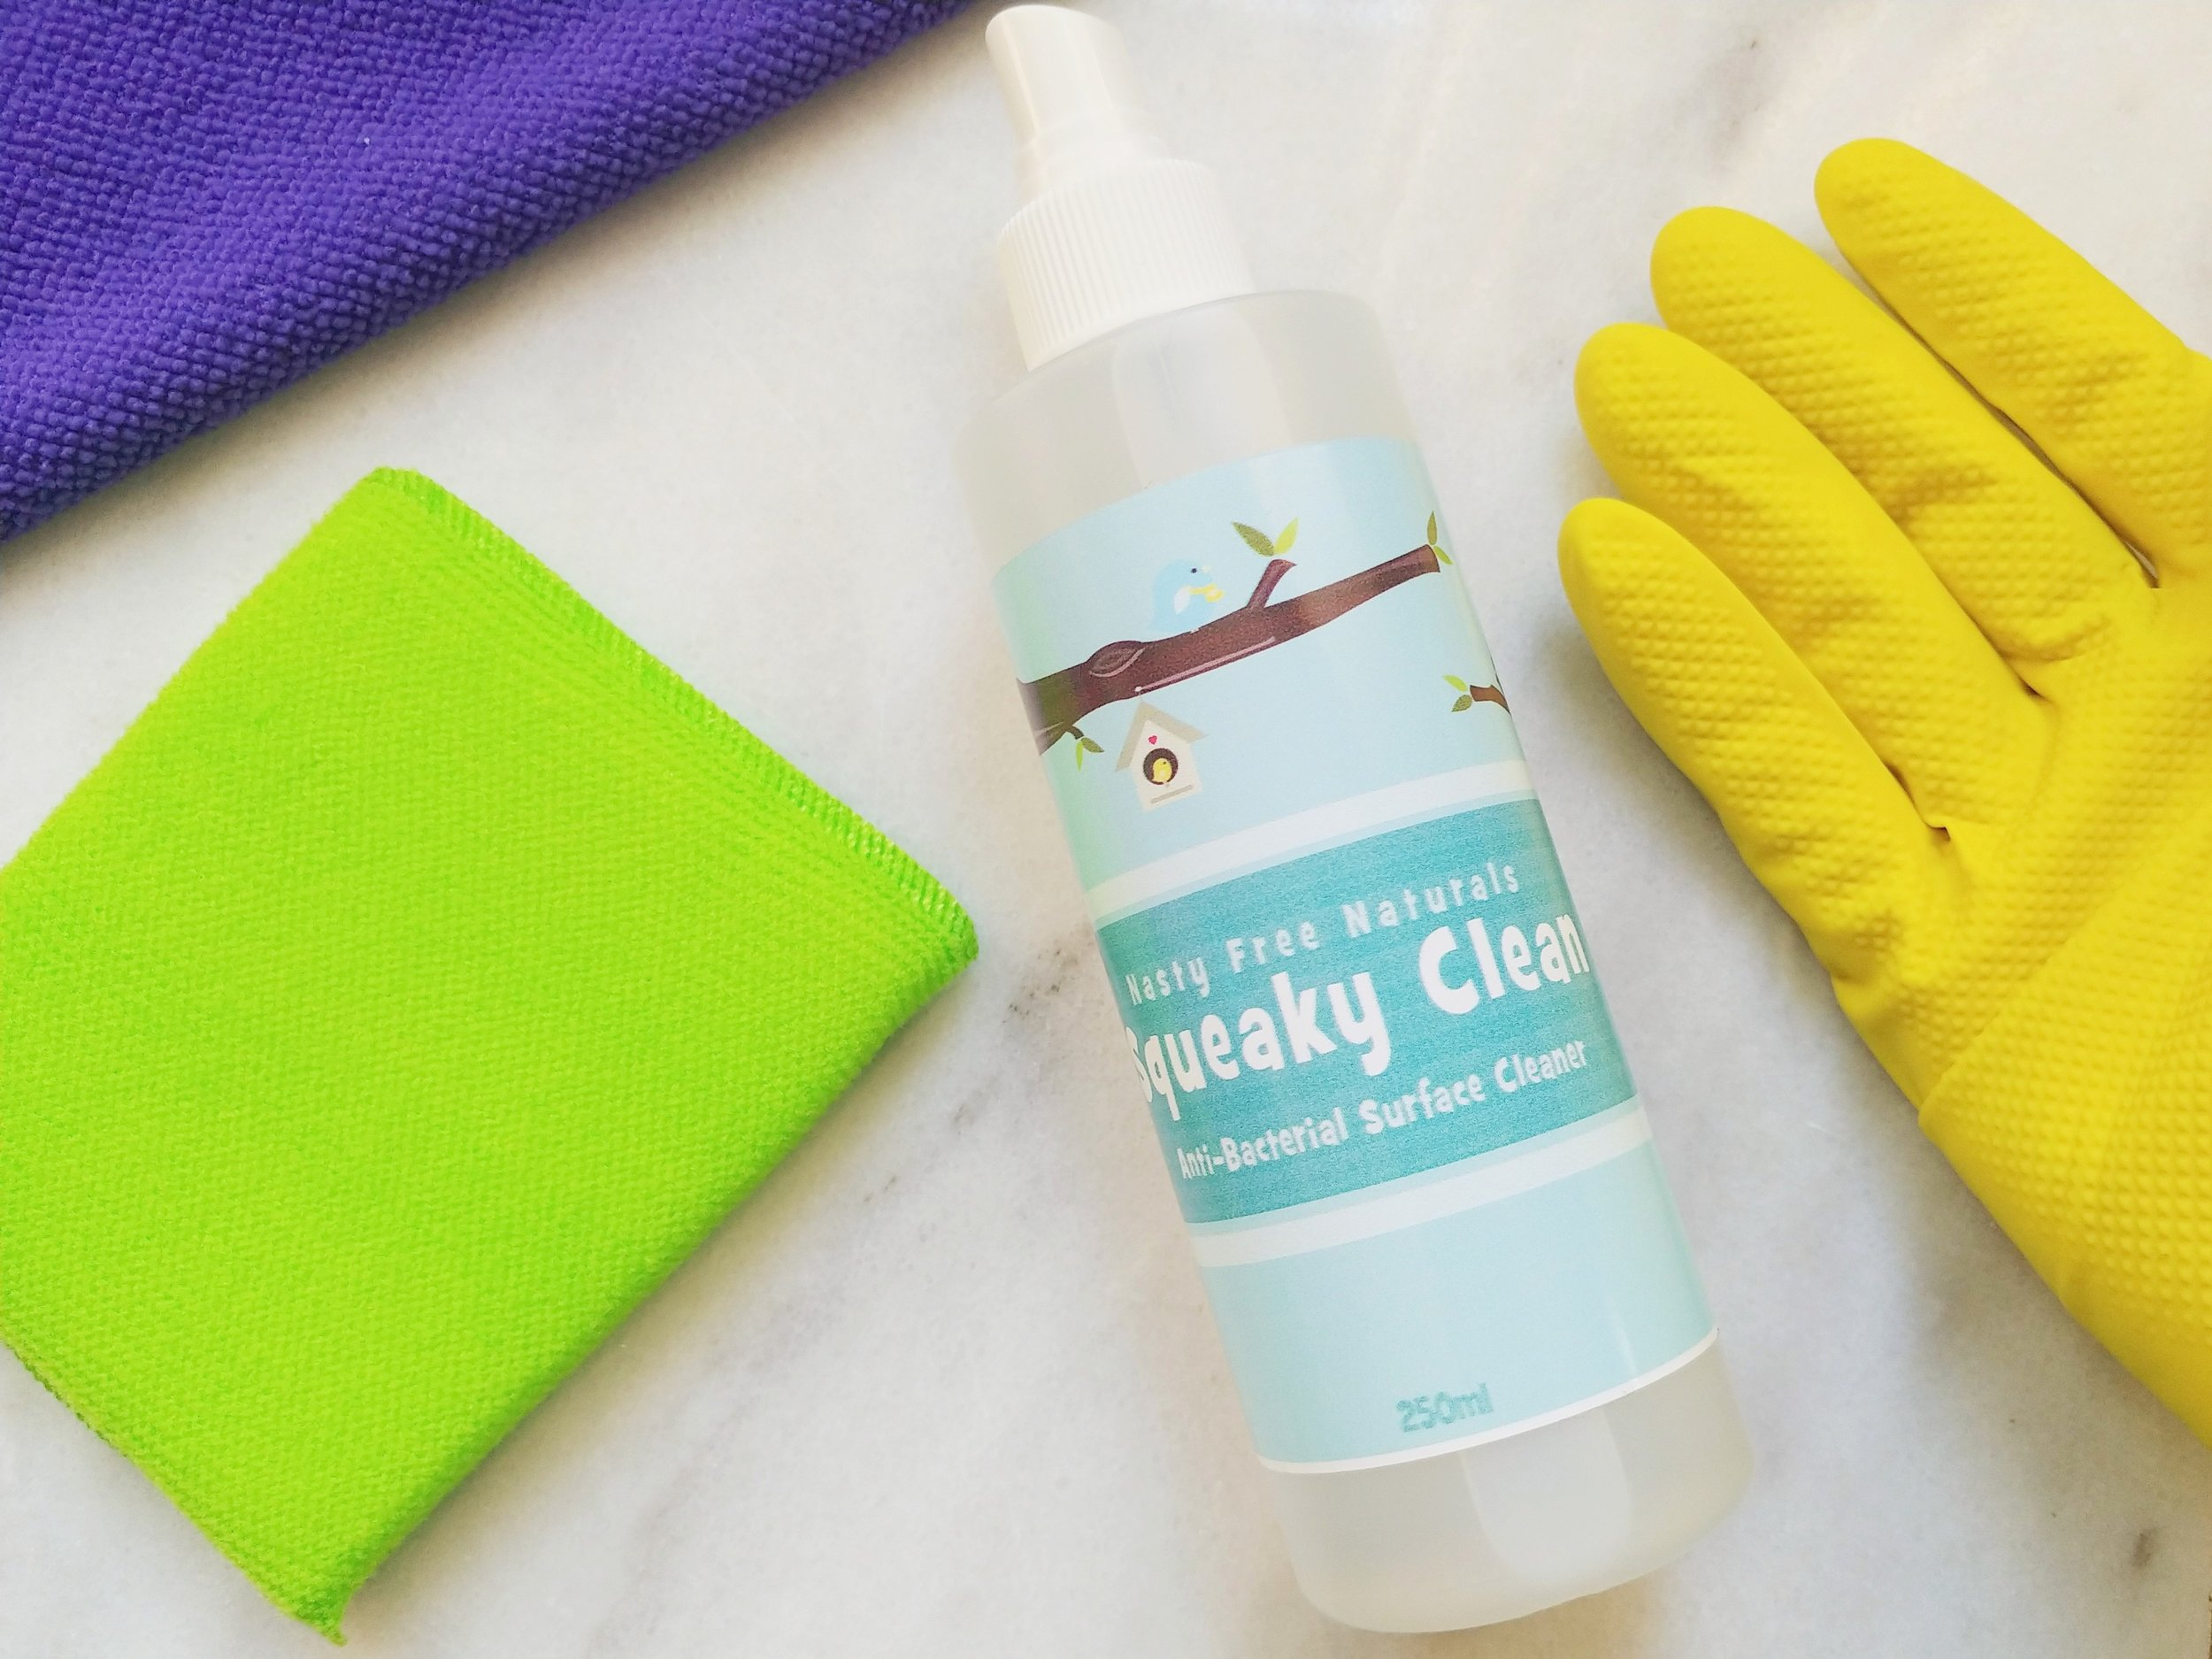 Anti Bacterial Cleaner from  Nasty Free Naturals  in Port Moody, BC